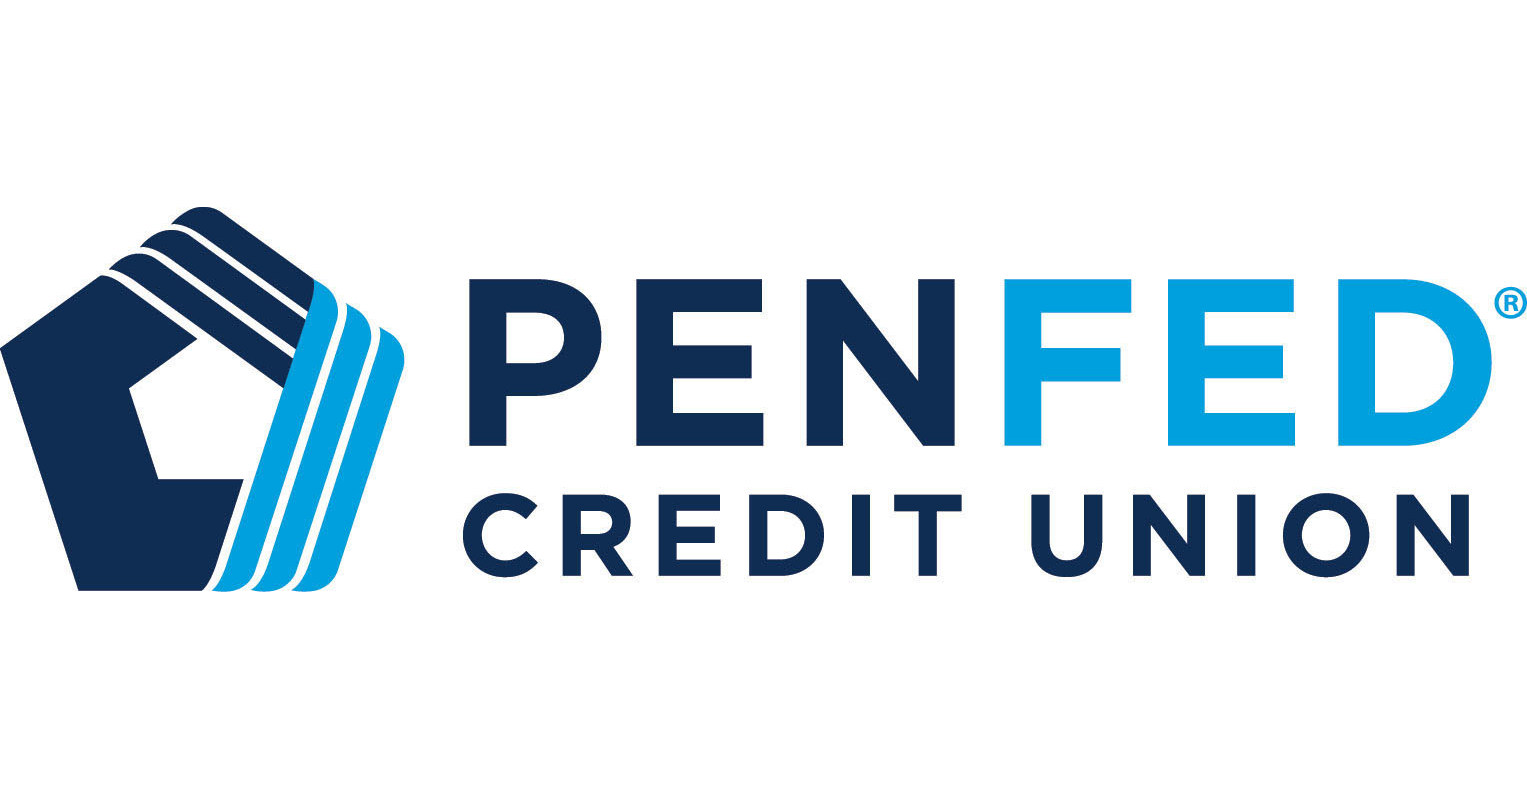 PenFed Credit Union Expands Partnership with NCR's Cardtronics to Provide Members Cash Deposit Capability through Allpoint ATMs